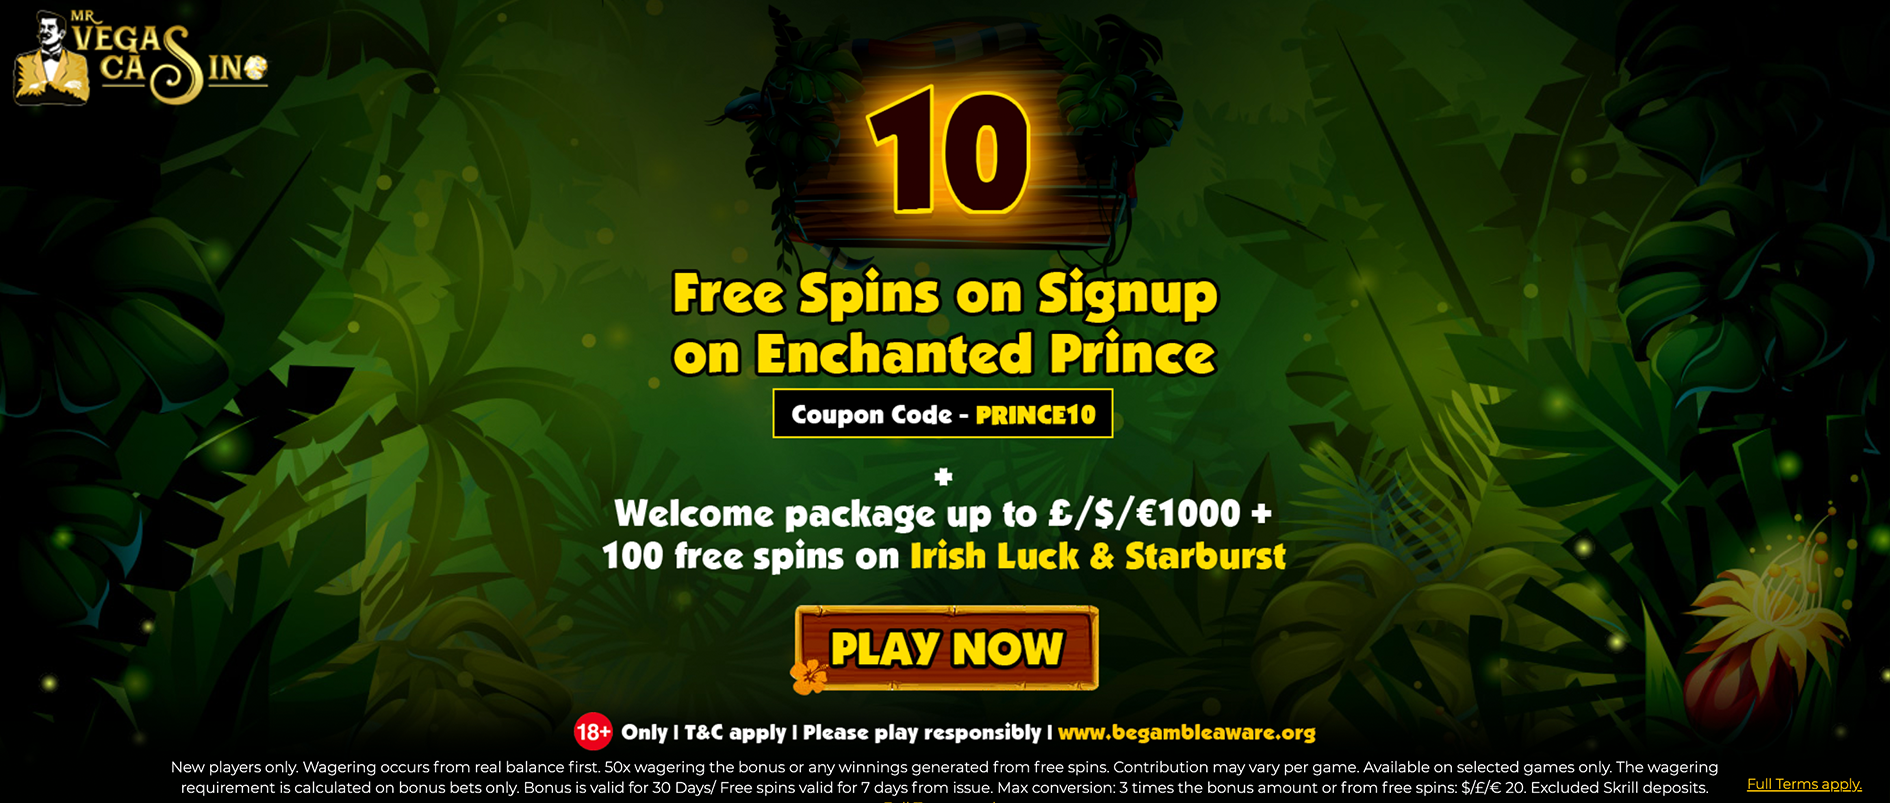 mr vegas casino free spins